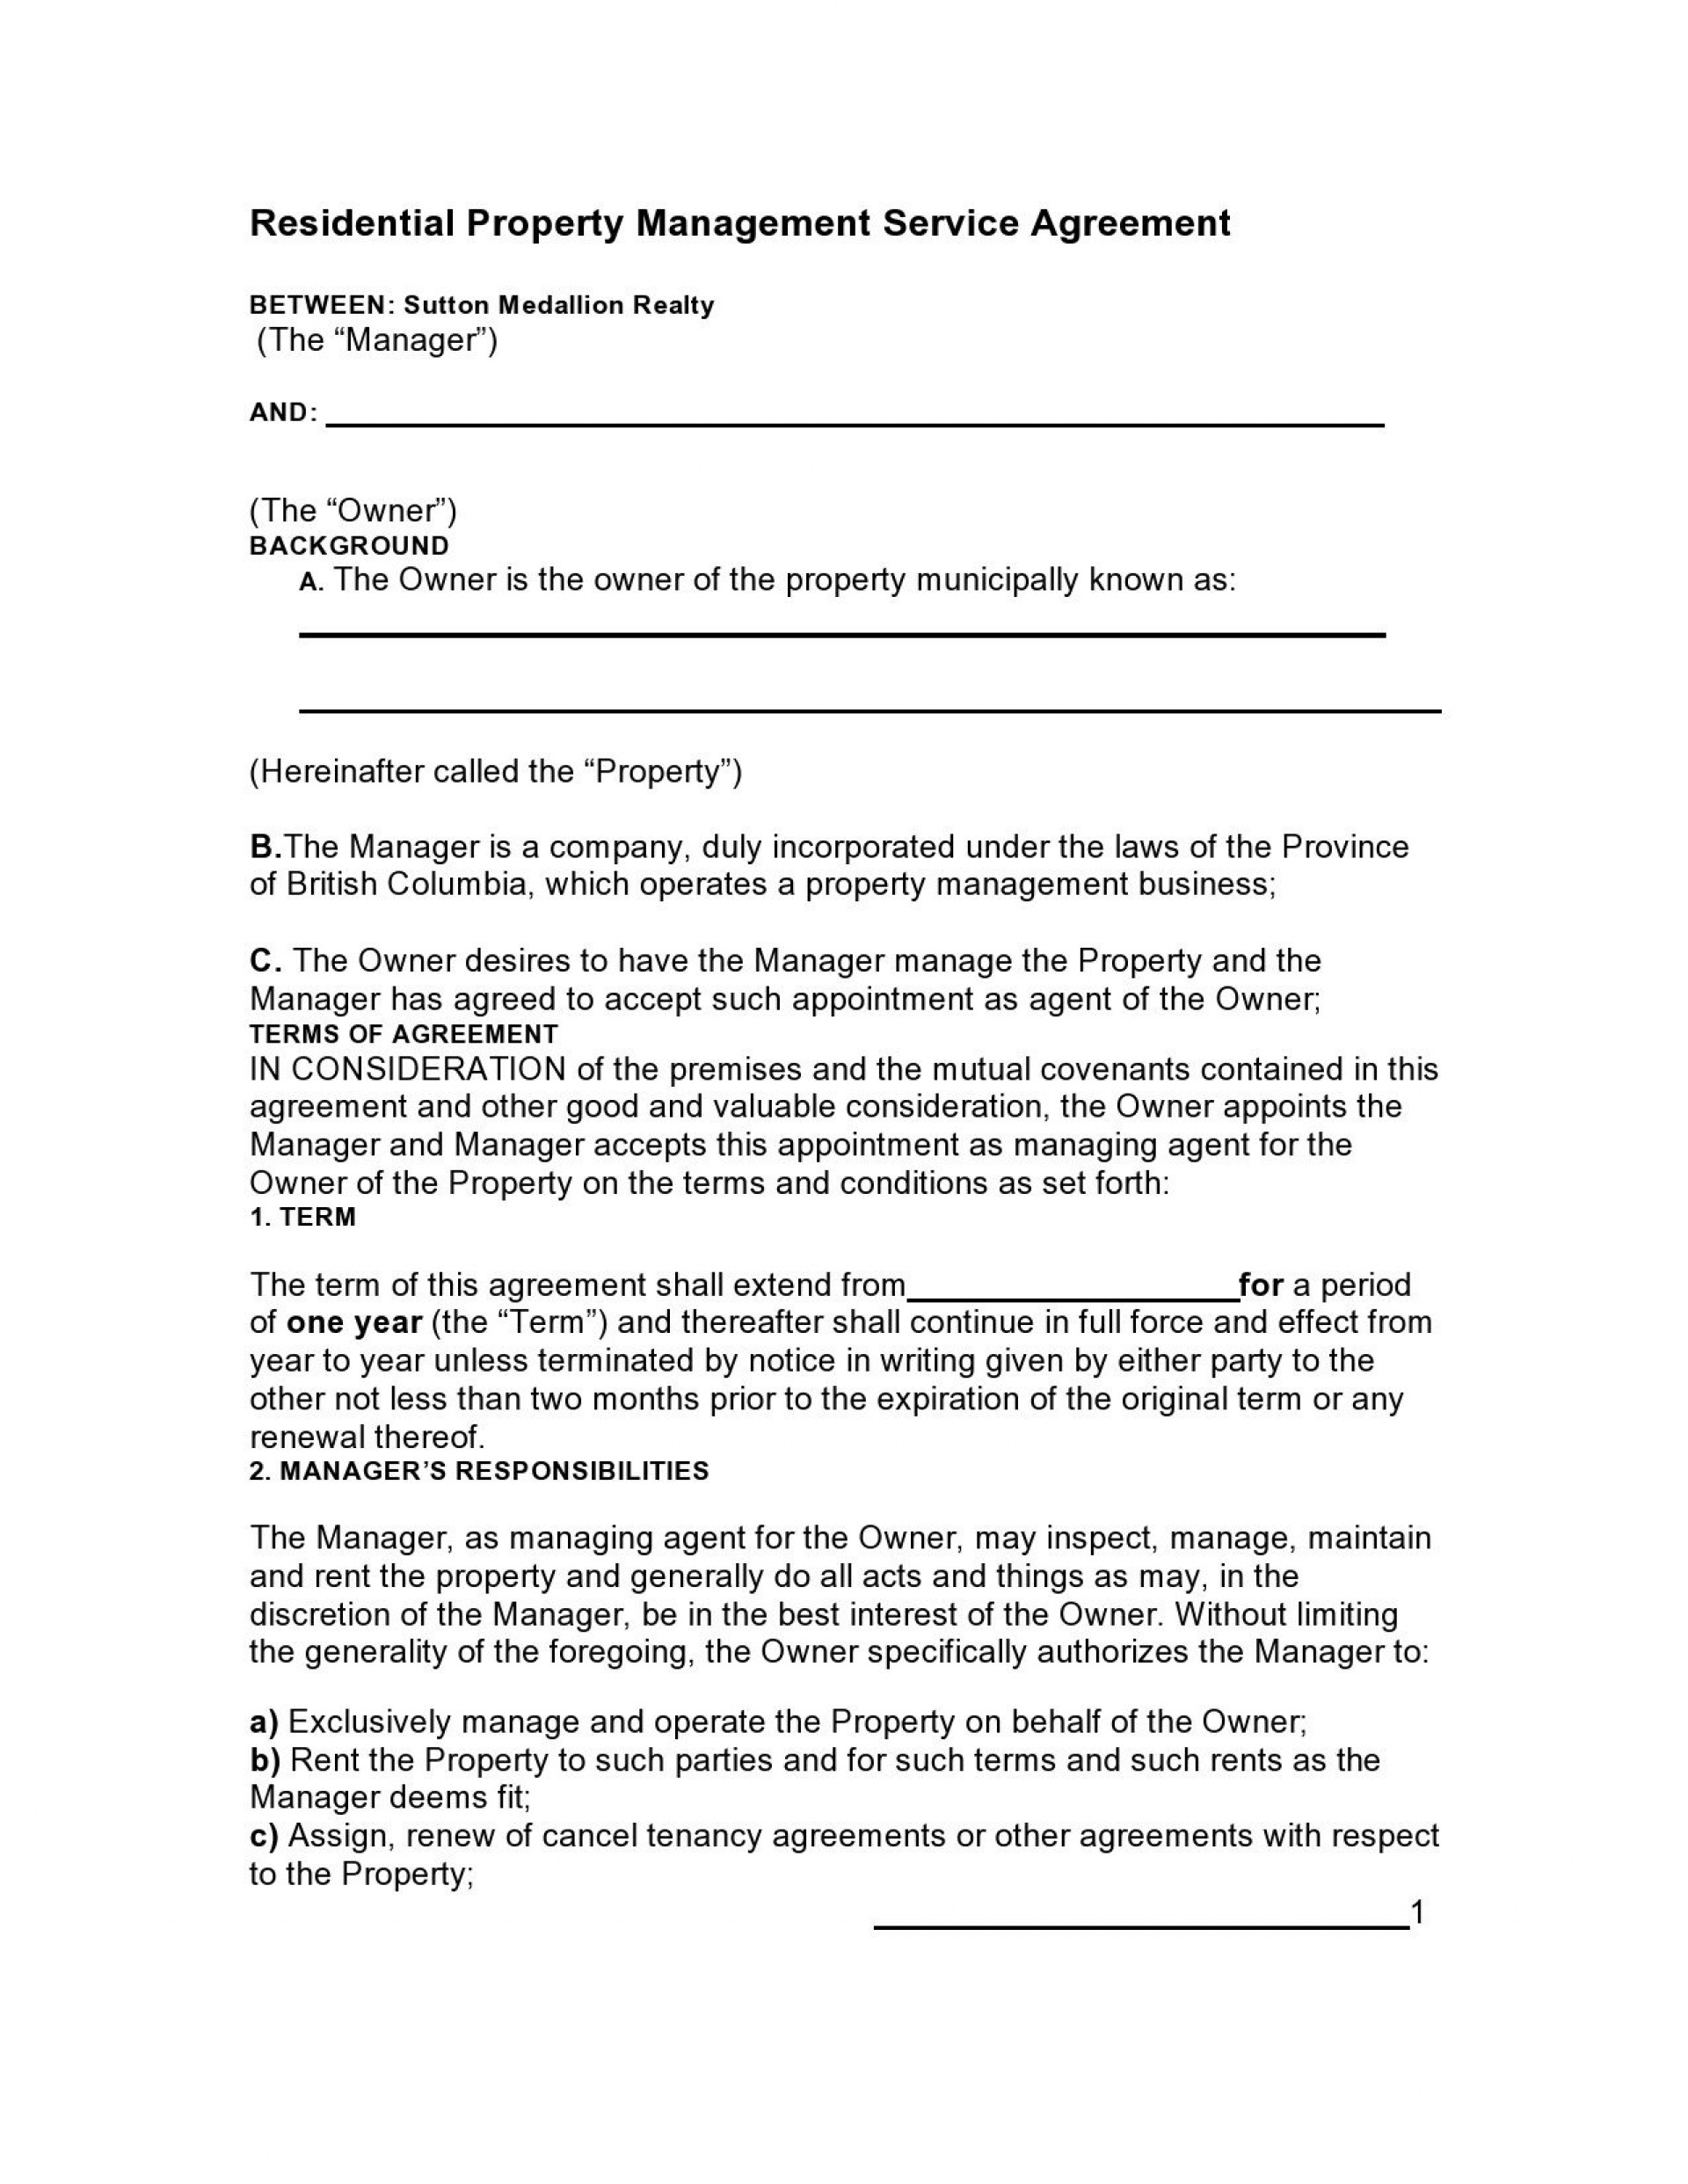 007 Top Property Management Contract Template Uk Sample  Free Agreement Commercial1920